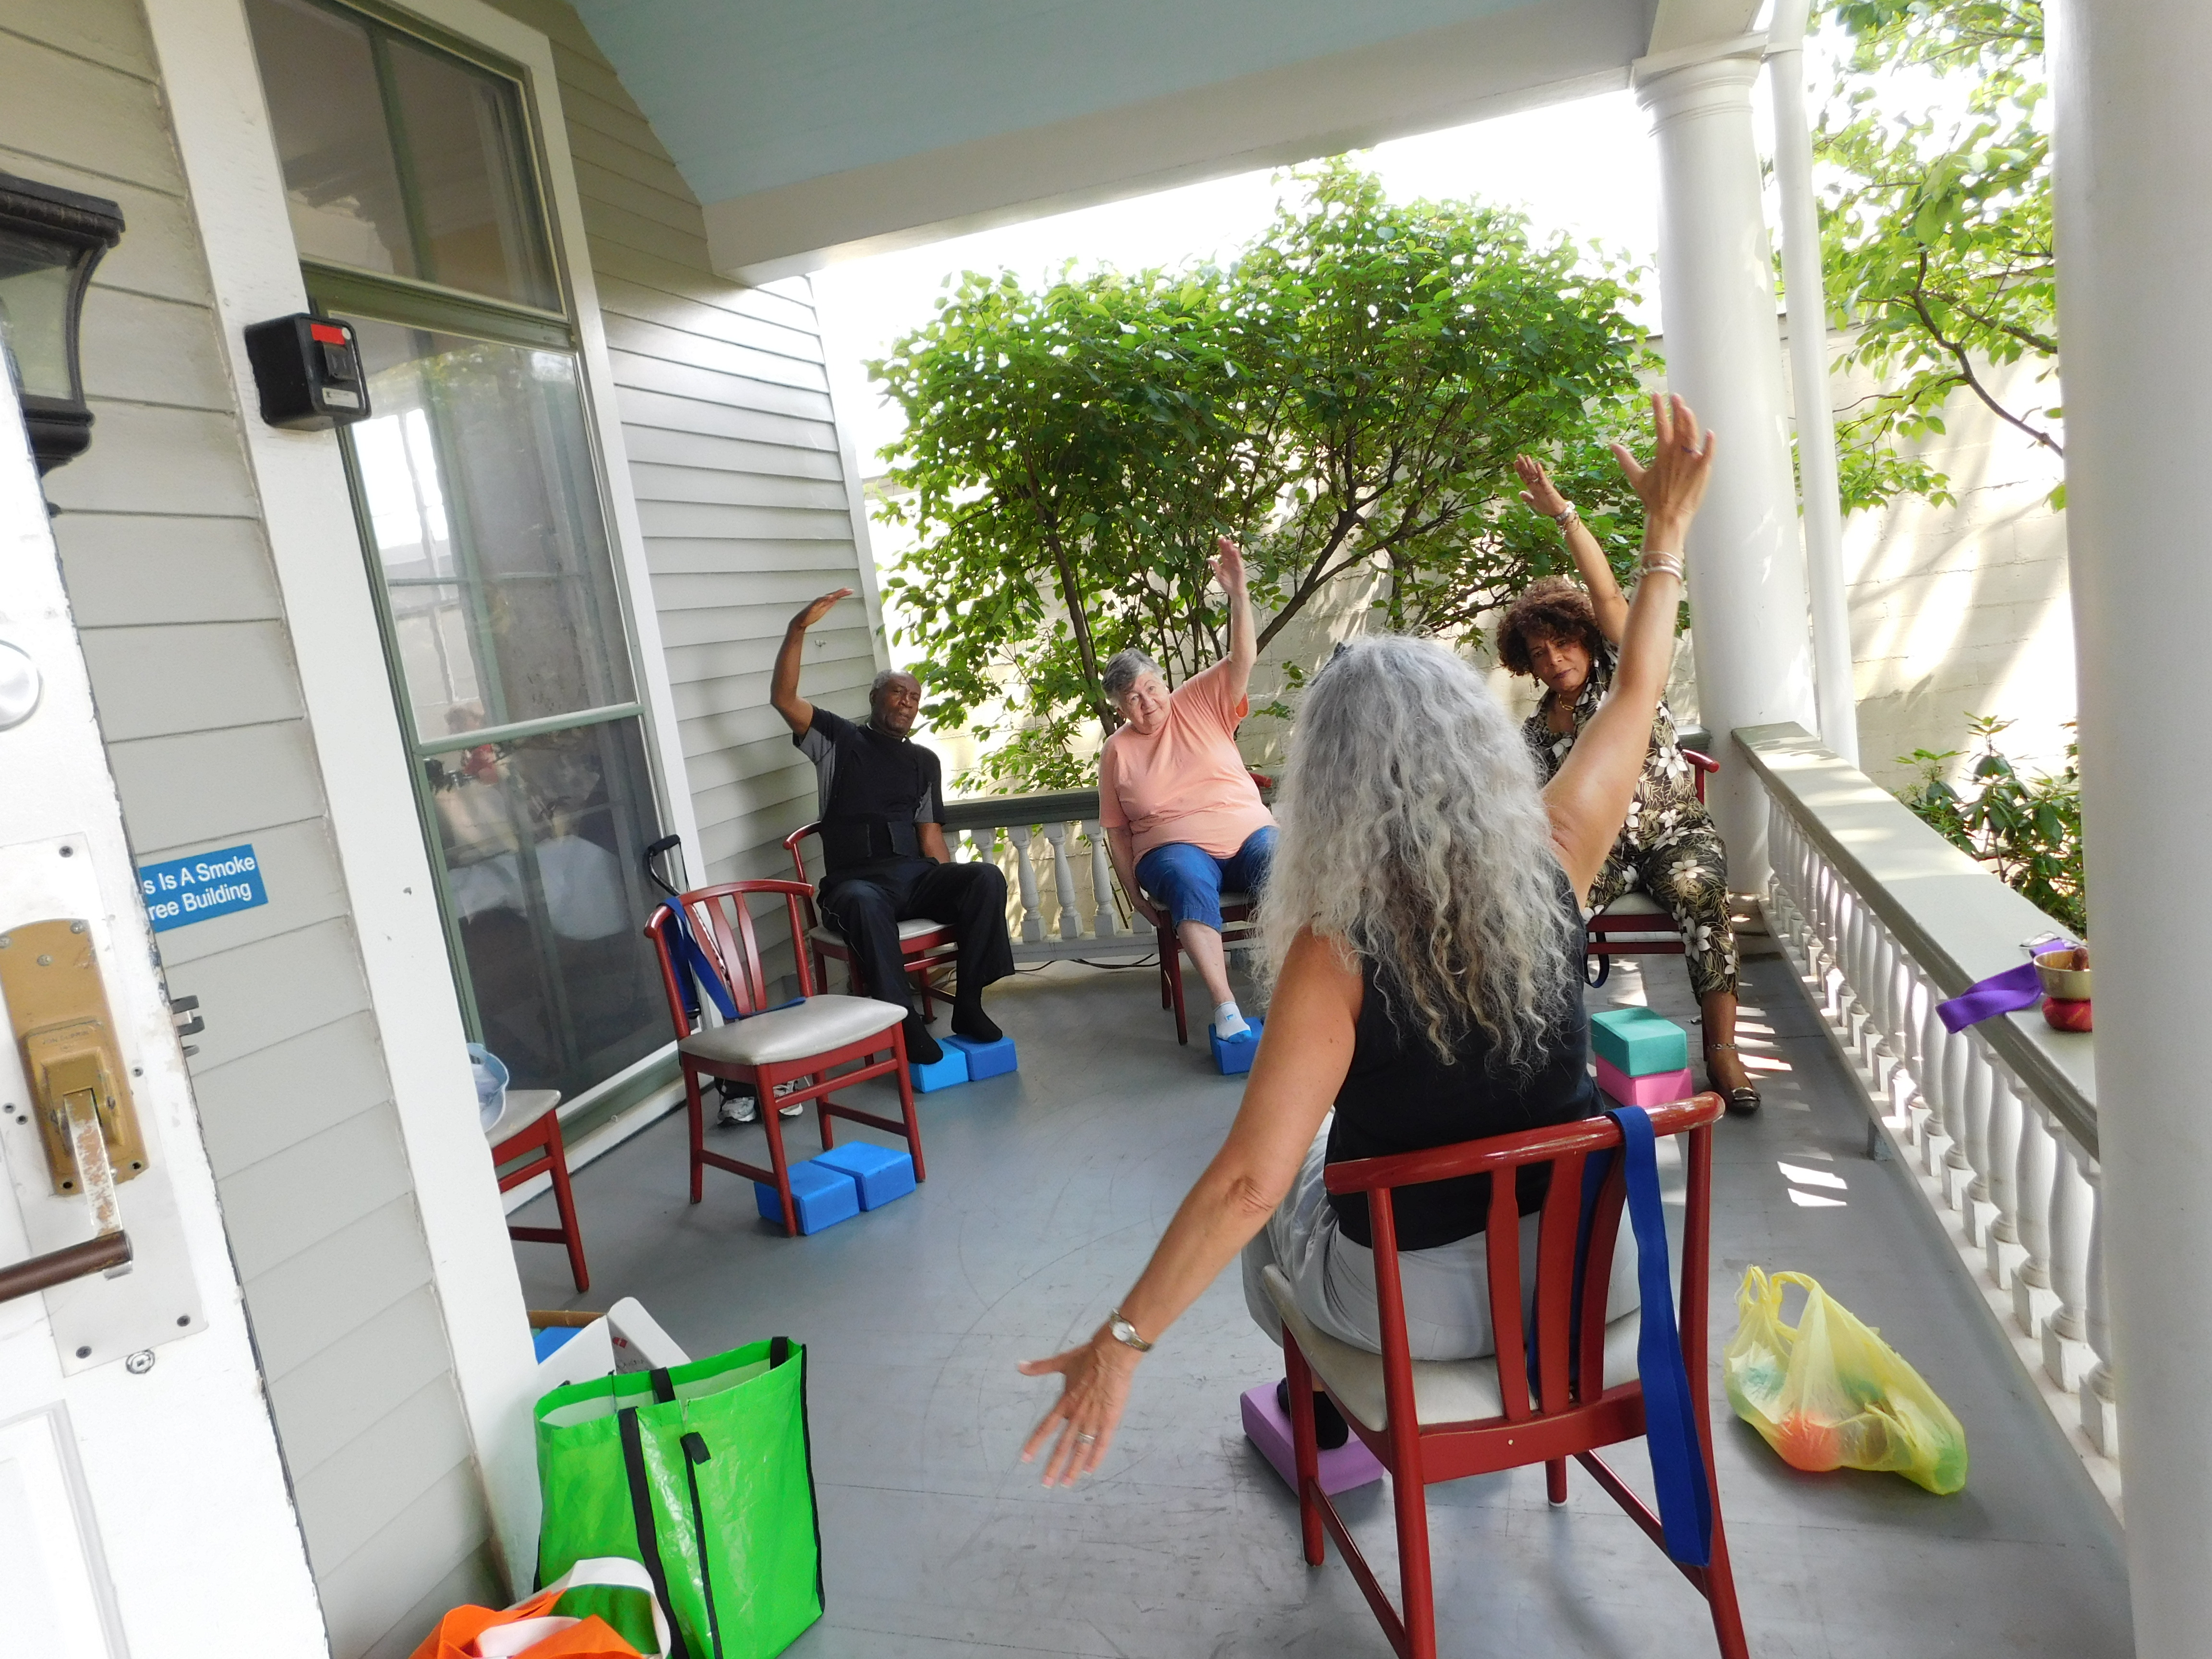 Beautiful weather permits chair yoga on the porch.